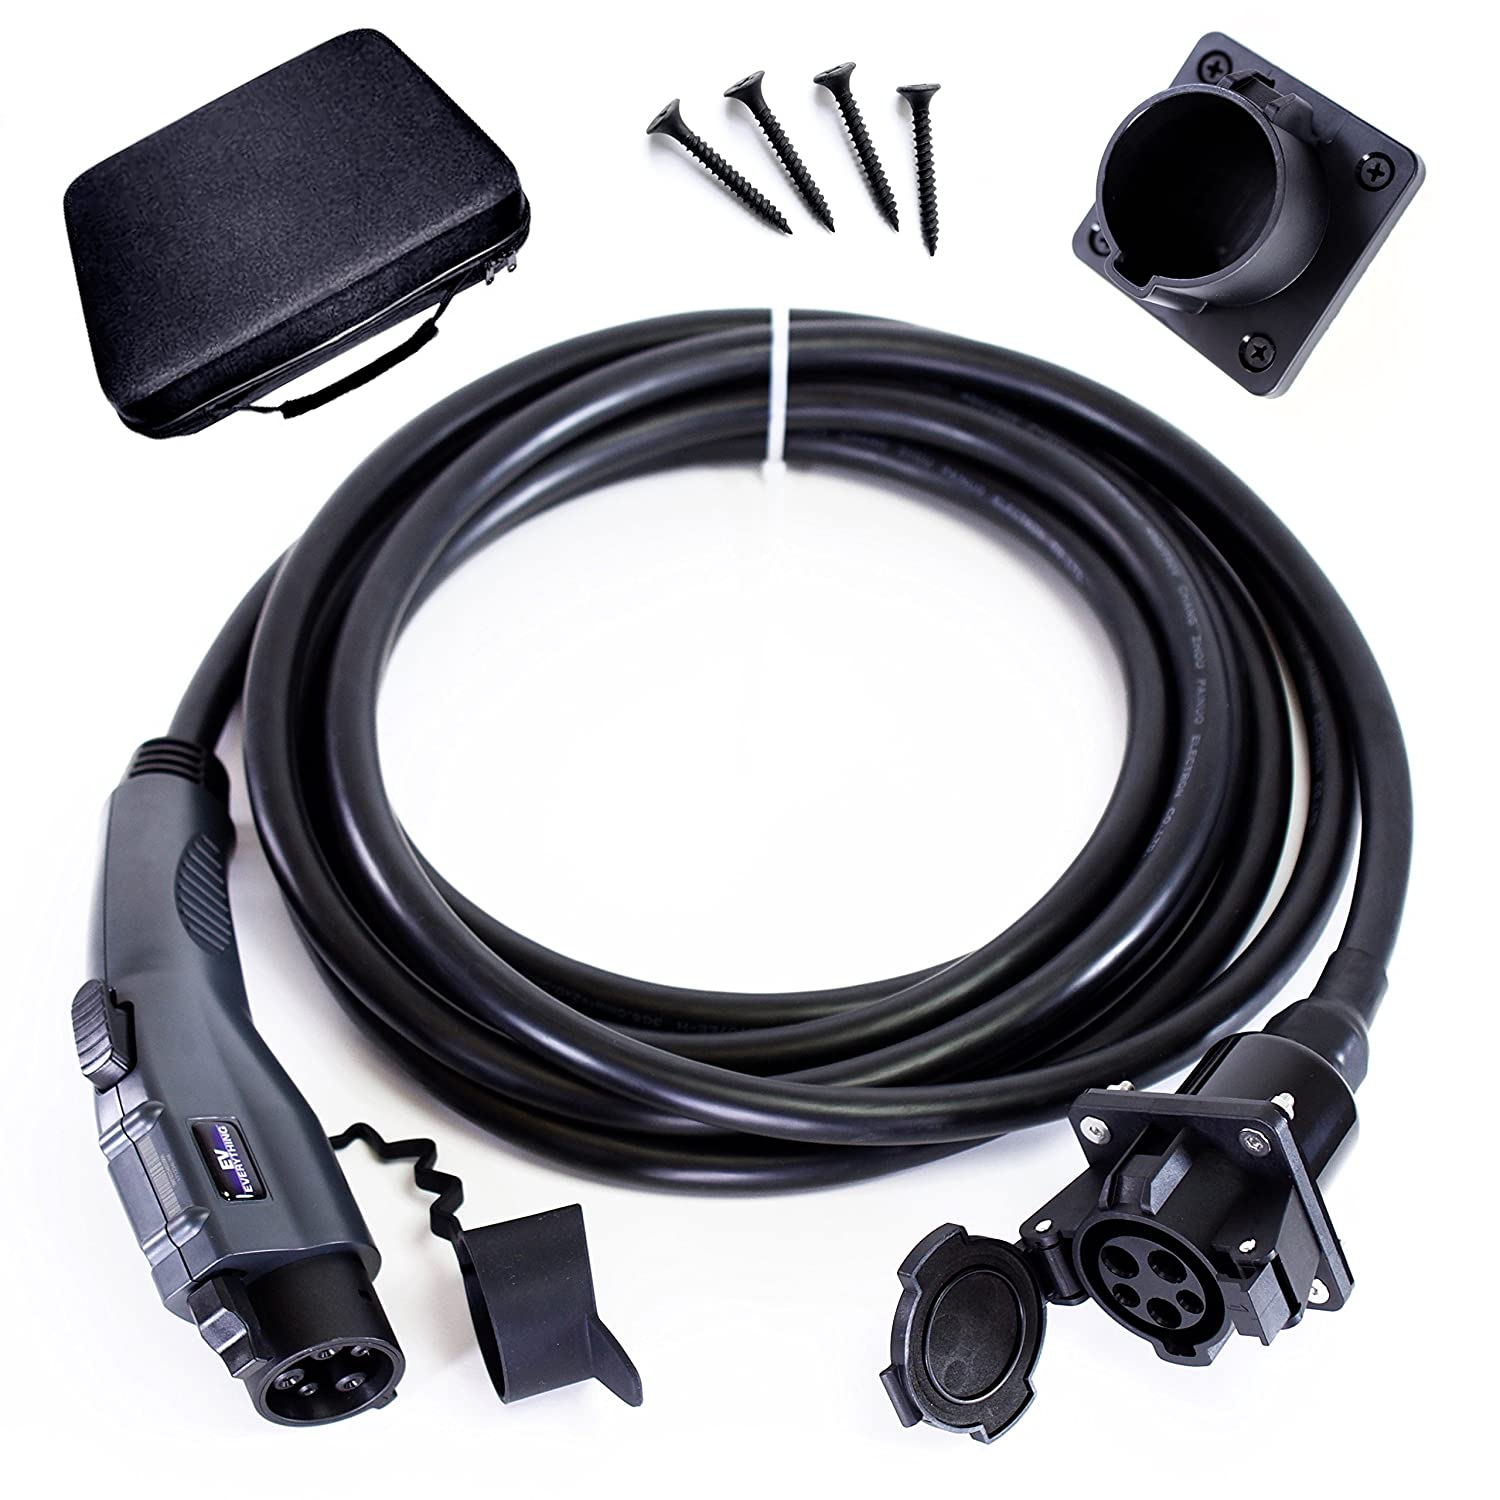 EV Everything 20 ft Extension Cord J1772 Cable 32 amp Electric Vehicle Charging + FREE Holster Dock Uchen 4336330424